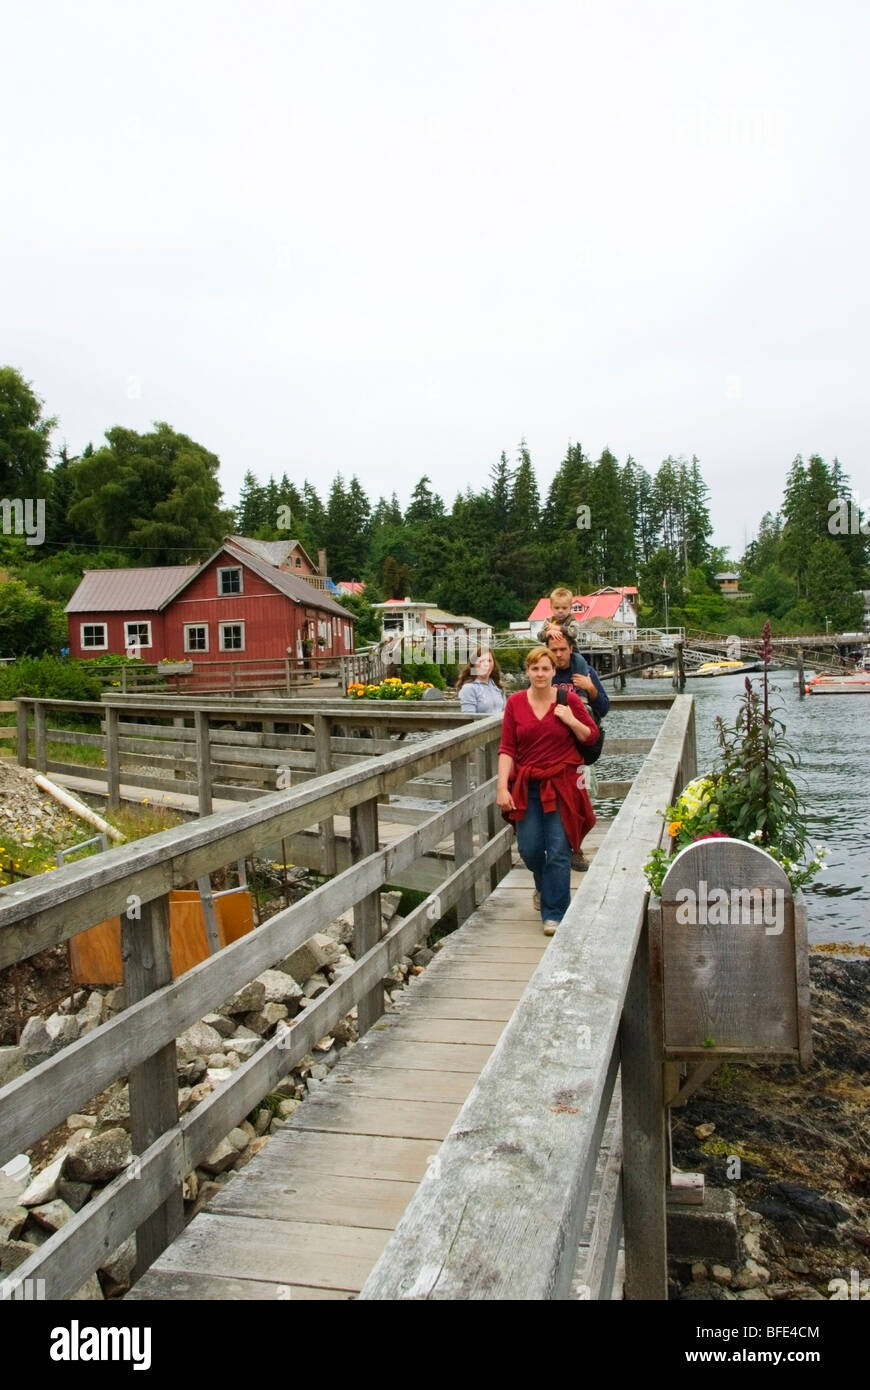 A family on seaside boardwalk in the coastal village of Bamfield, Vancouver Island, British Columbia, Canada Stock Photo